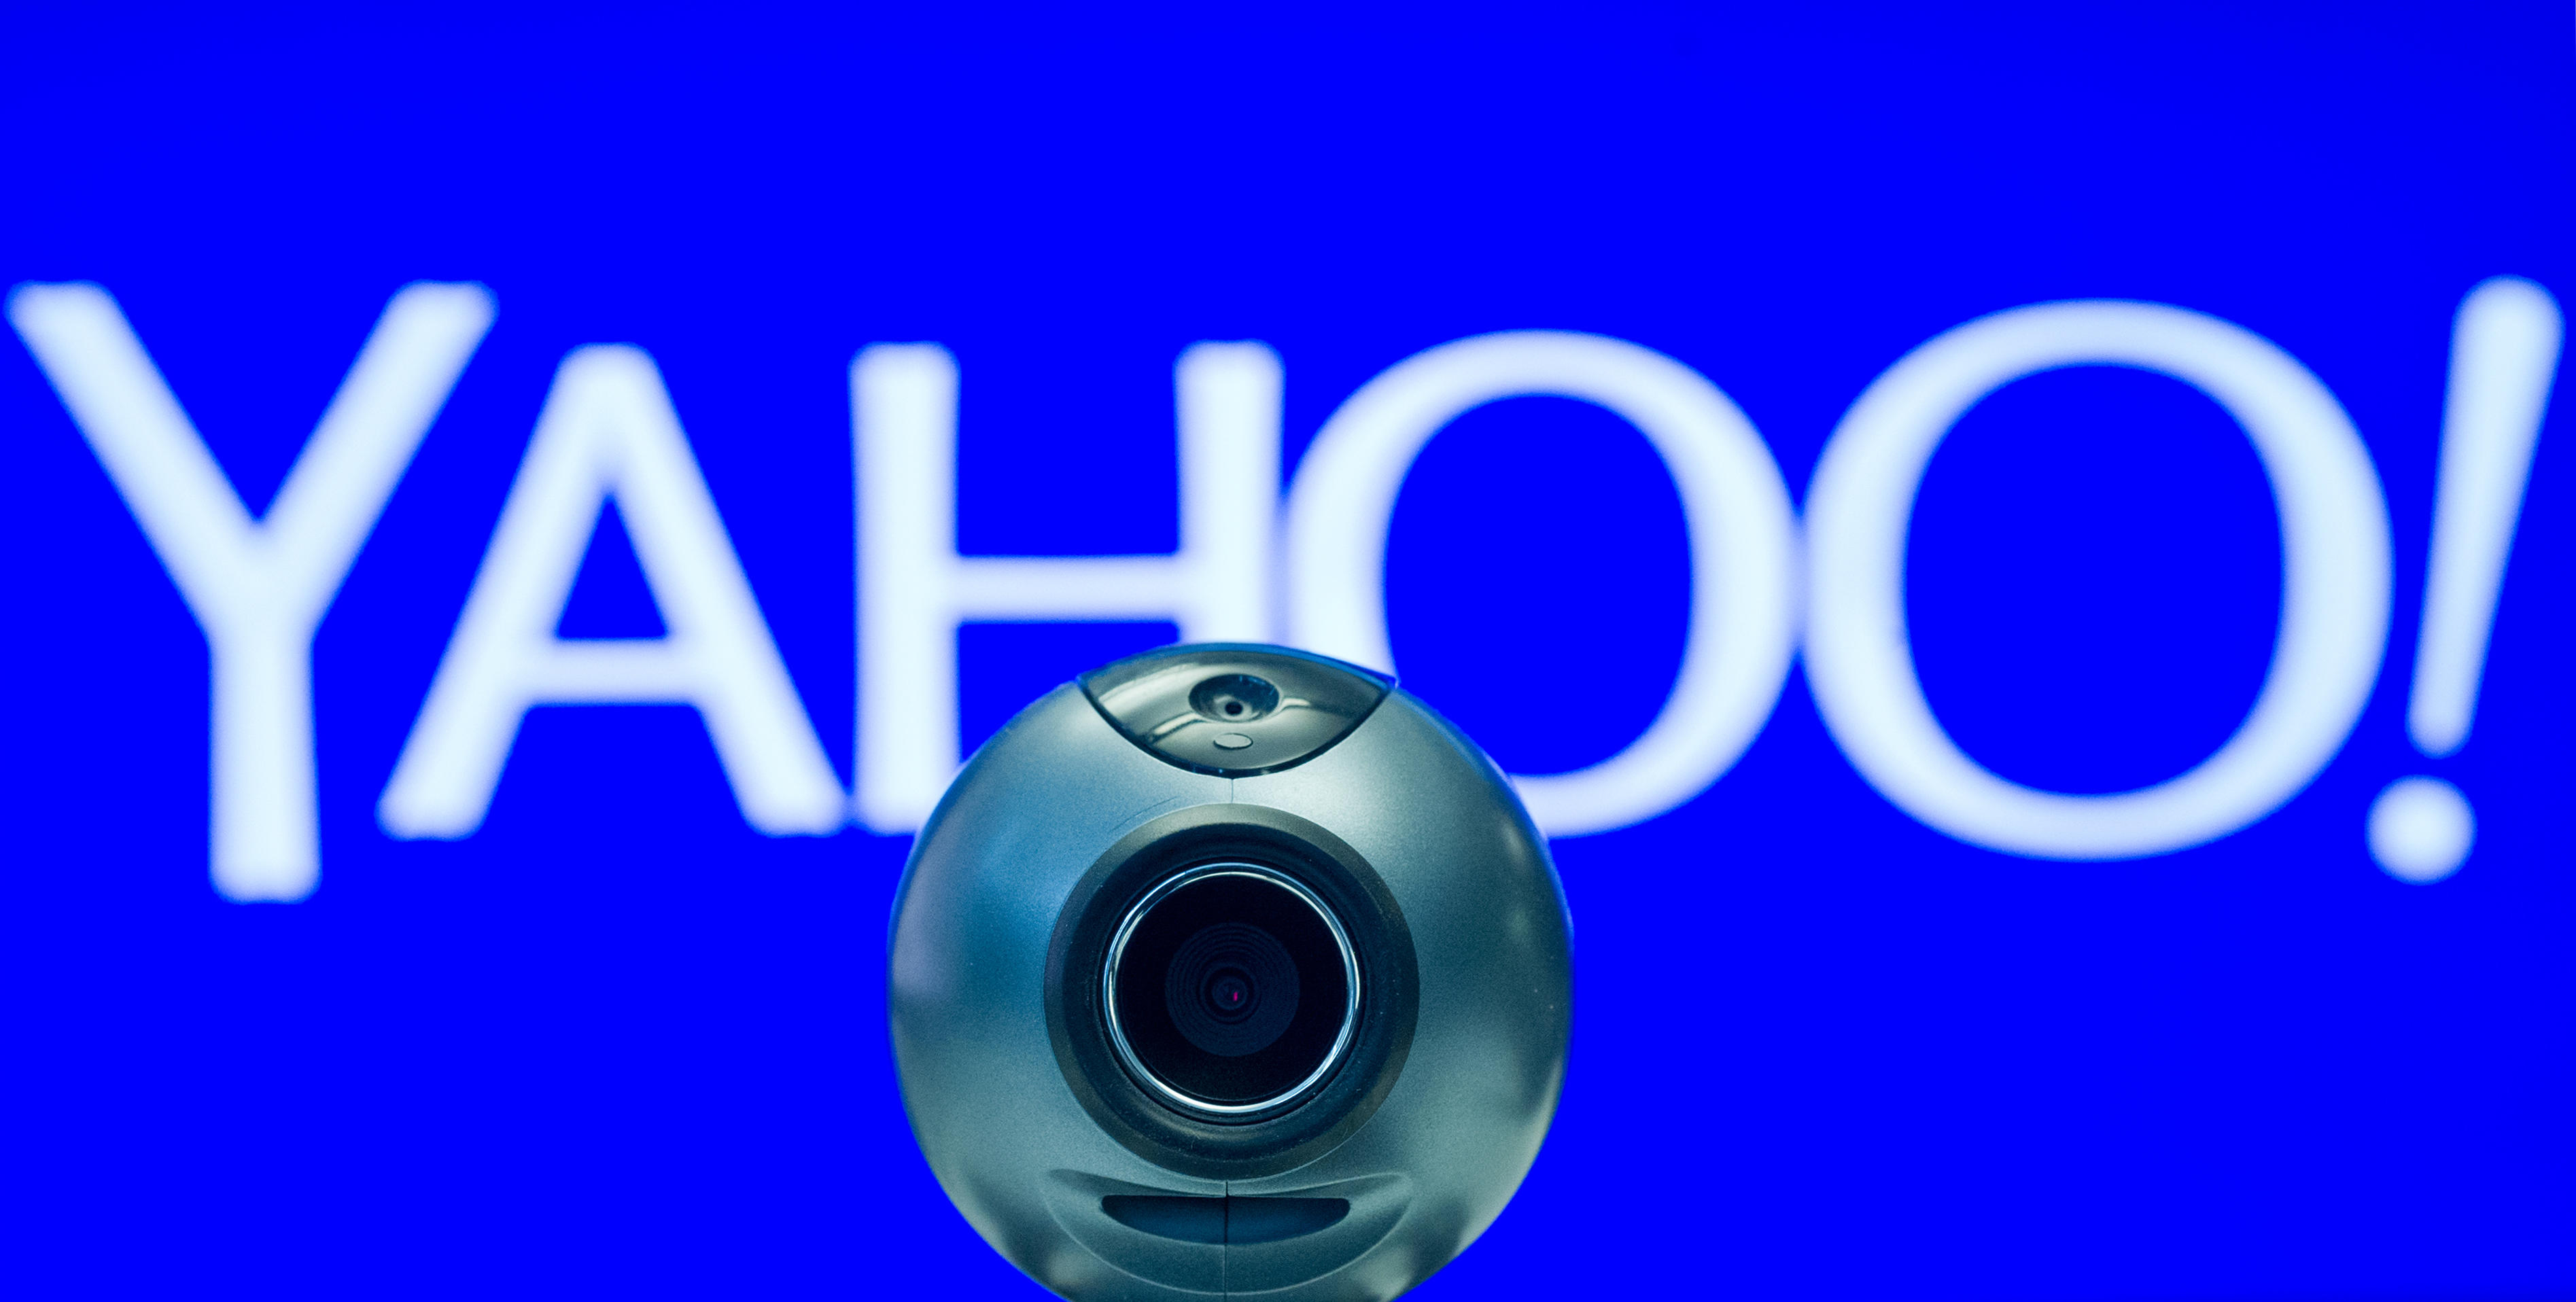 Yahoo pays $50 million in fines over data breaches